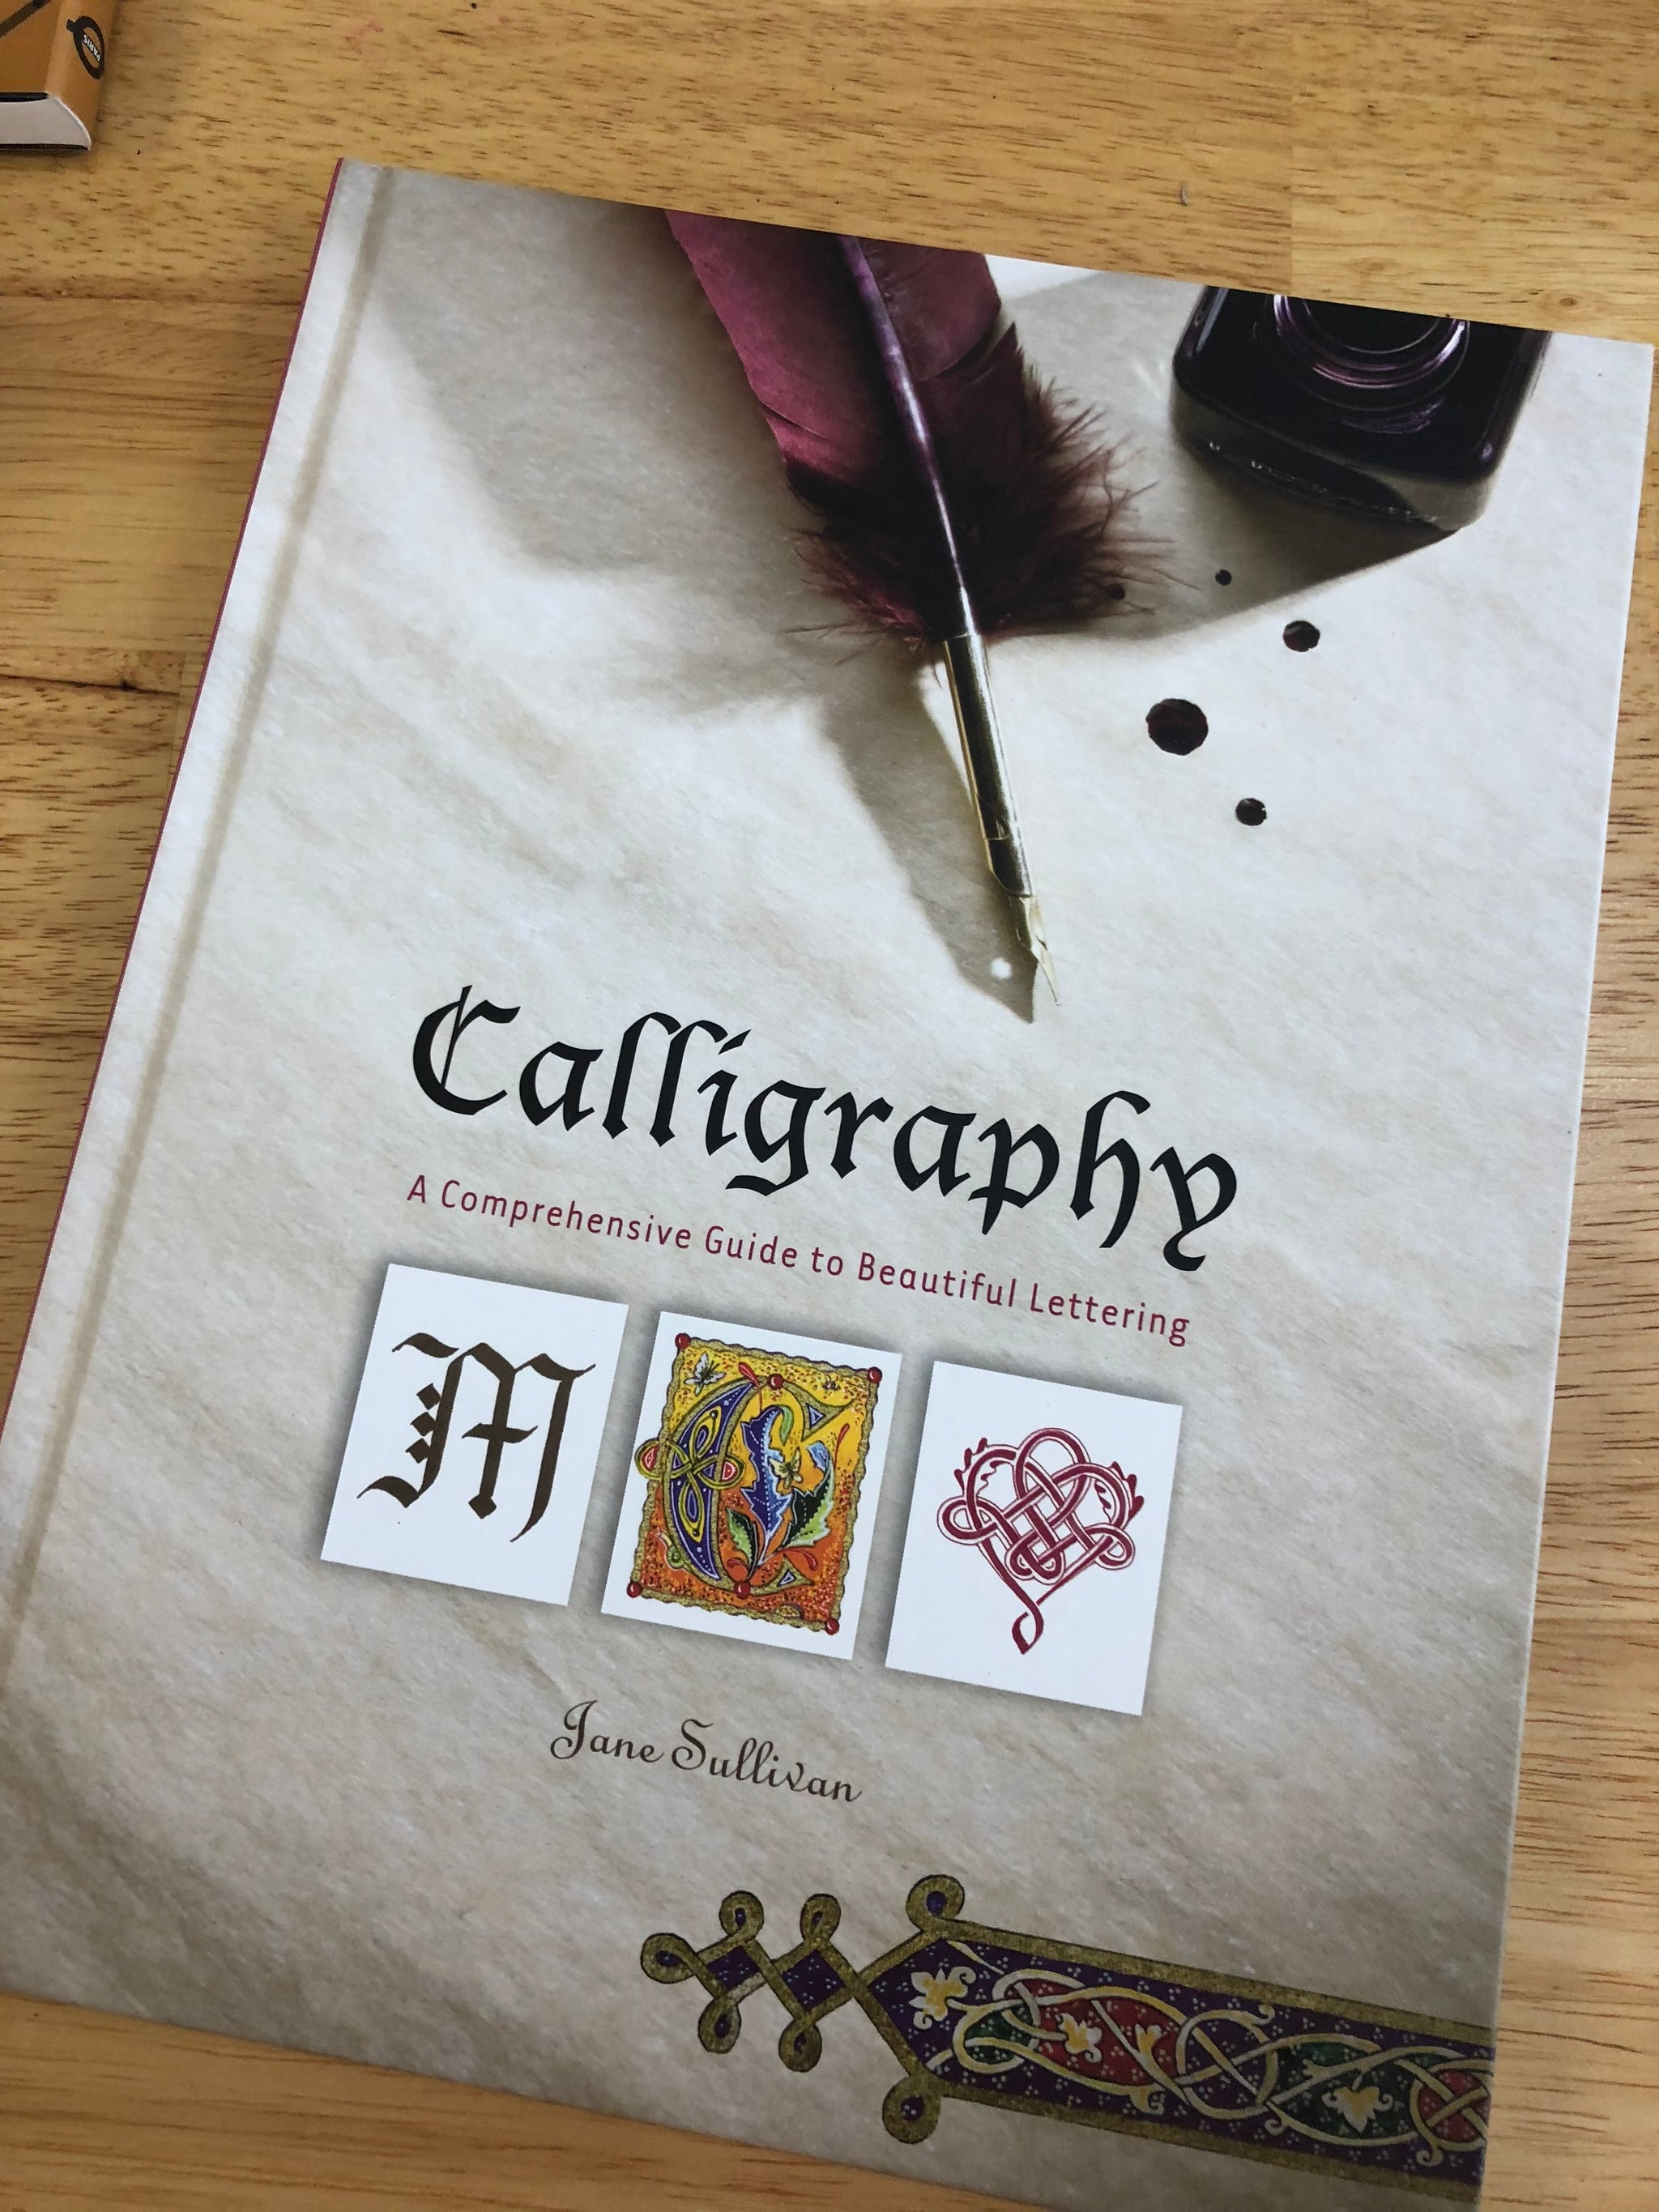 Calligraphy: A Comprehensive Guide to Beautiful Lettering (Jane Sullivan)